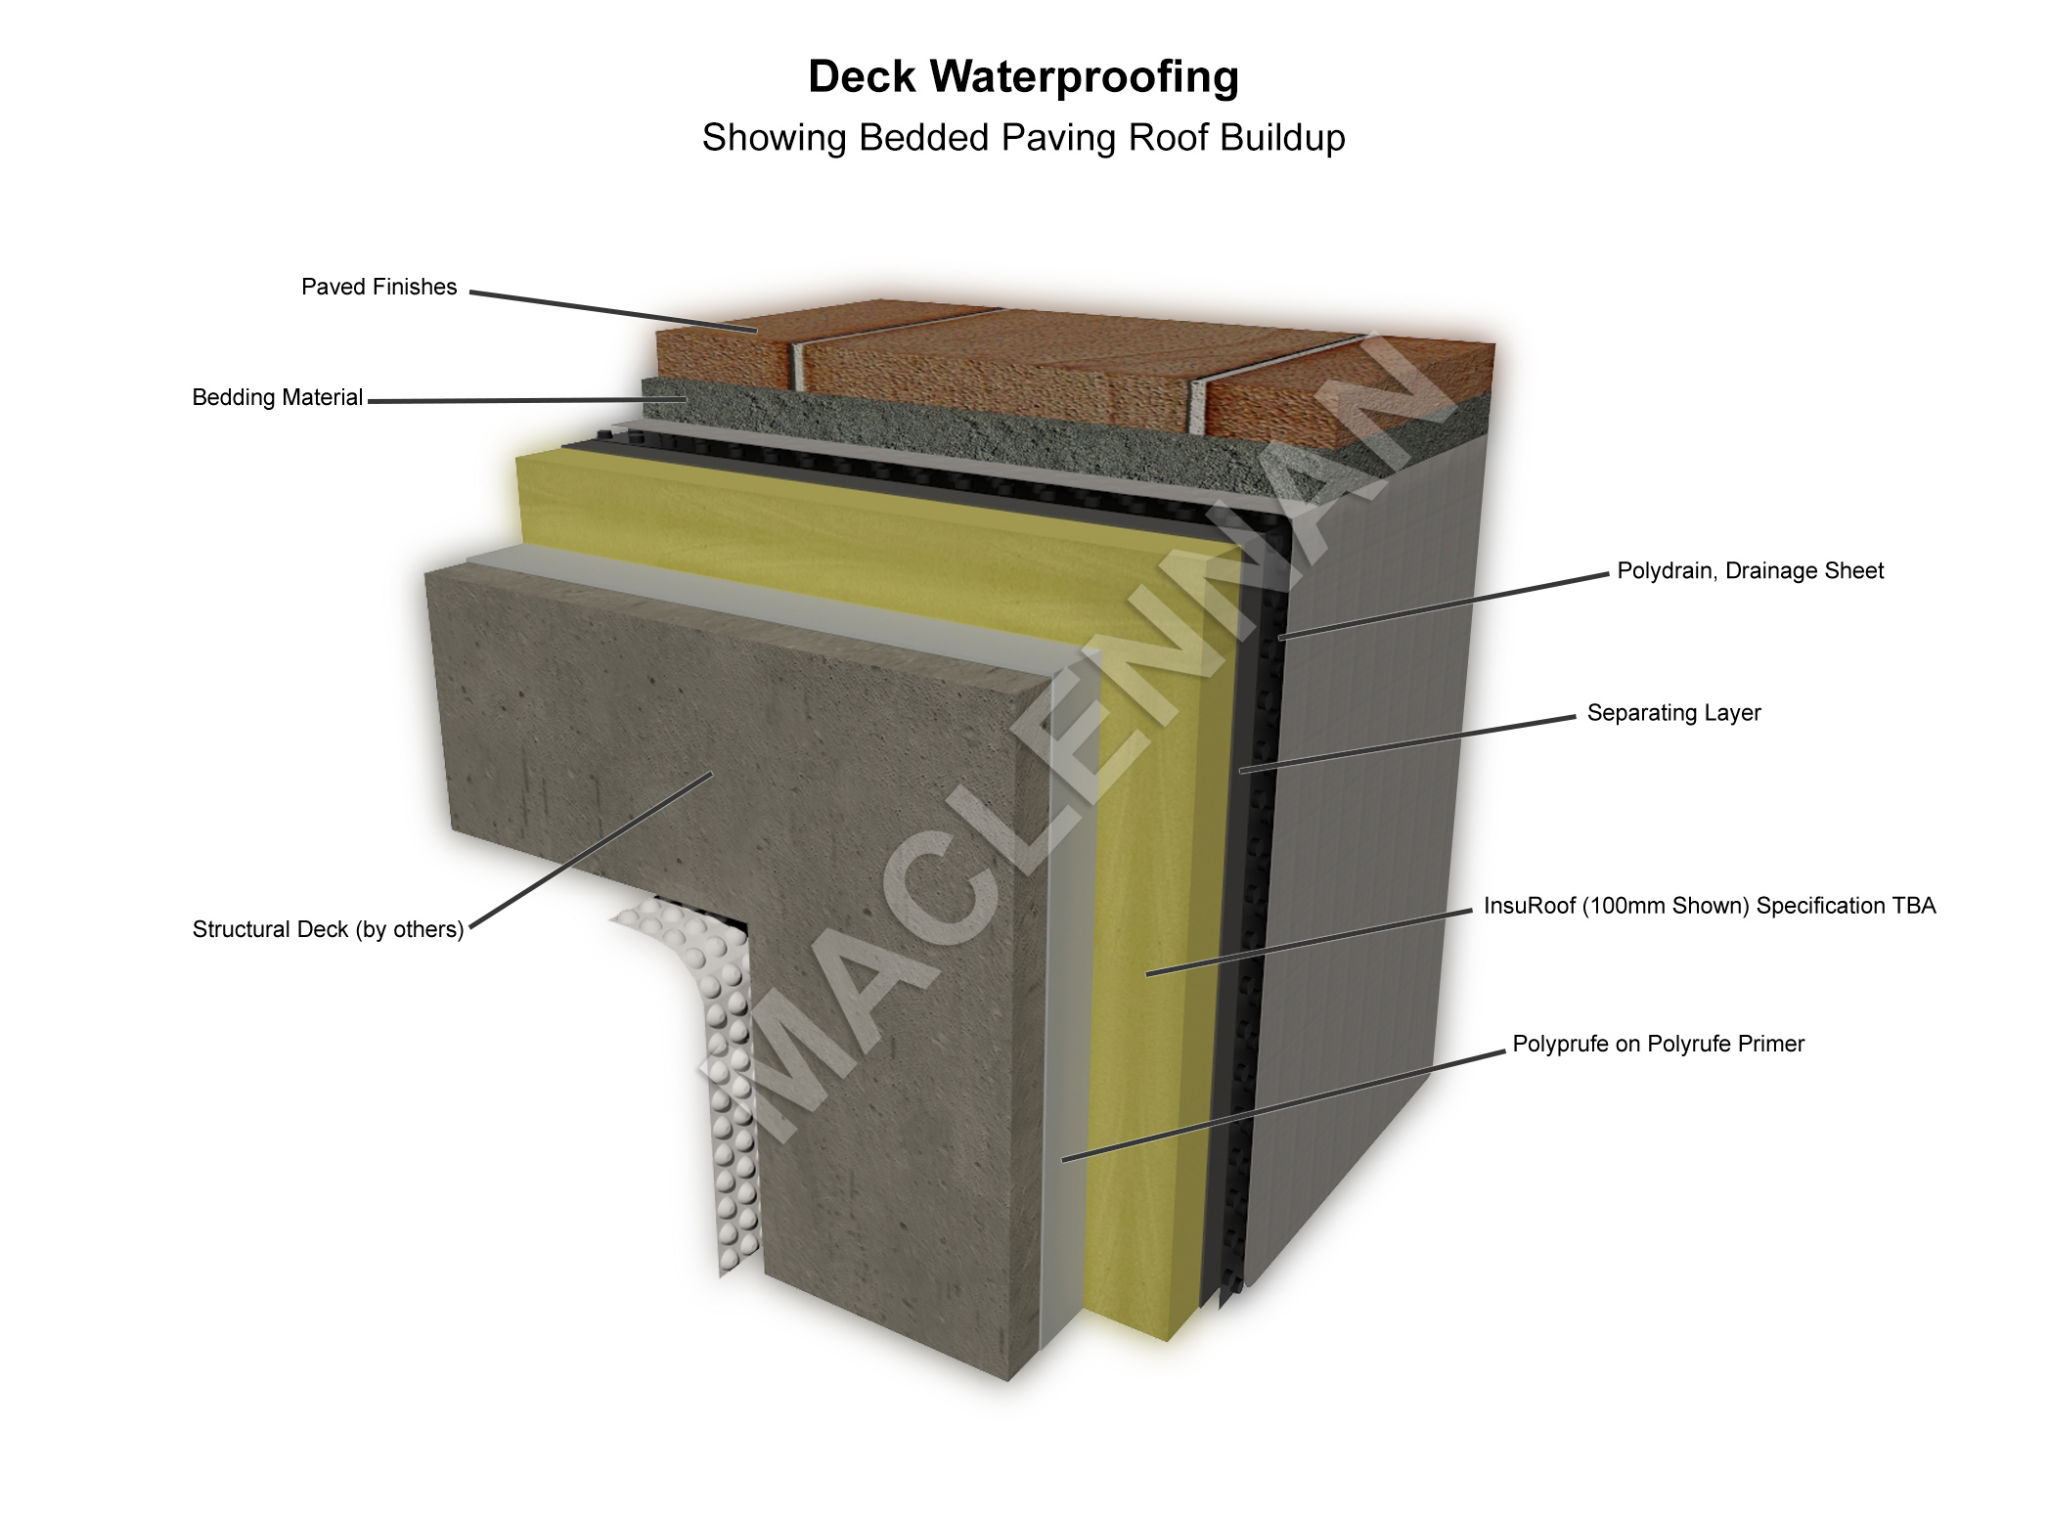 basement waterproofing wentworth surrey deck waterproofing